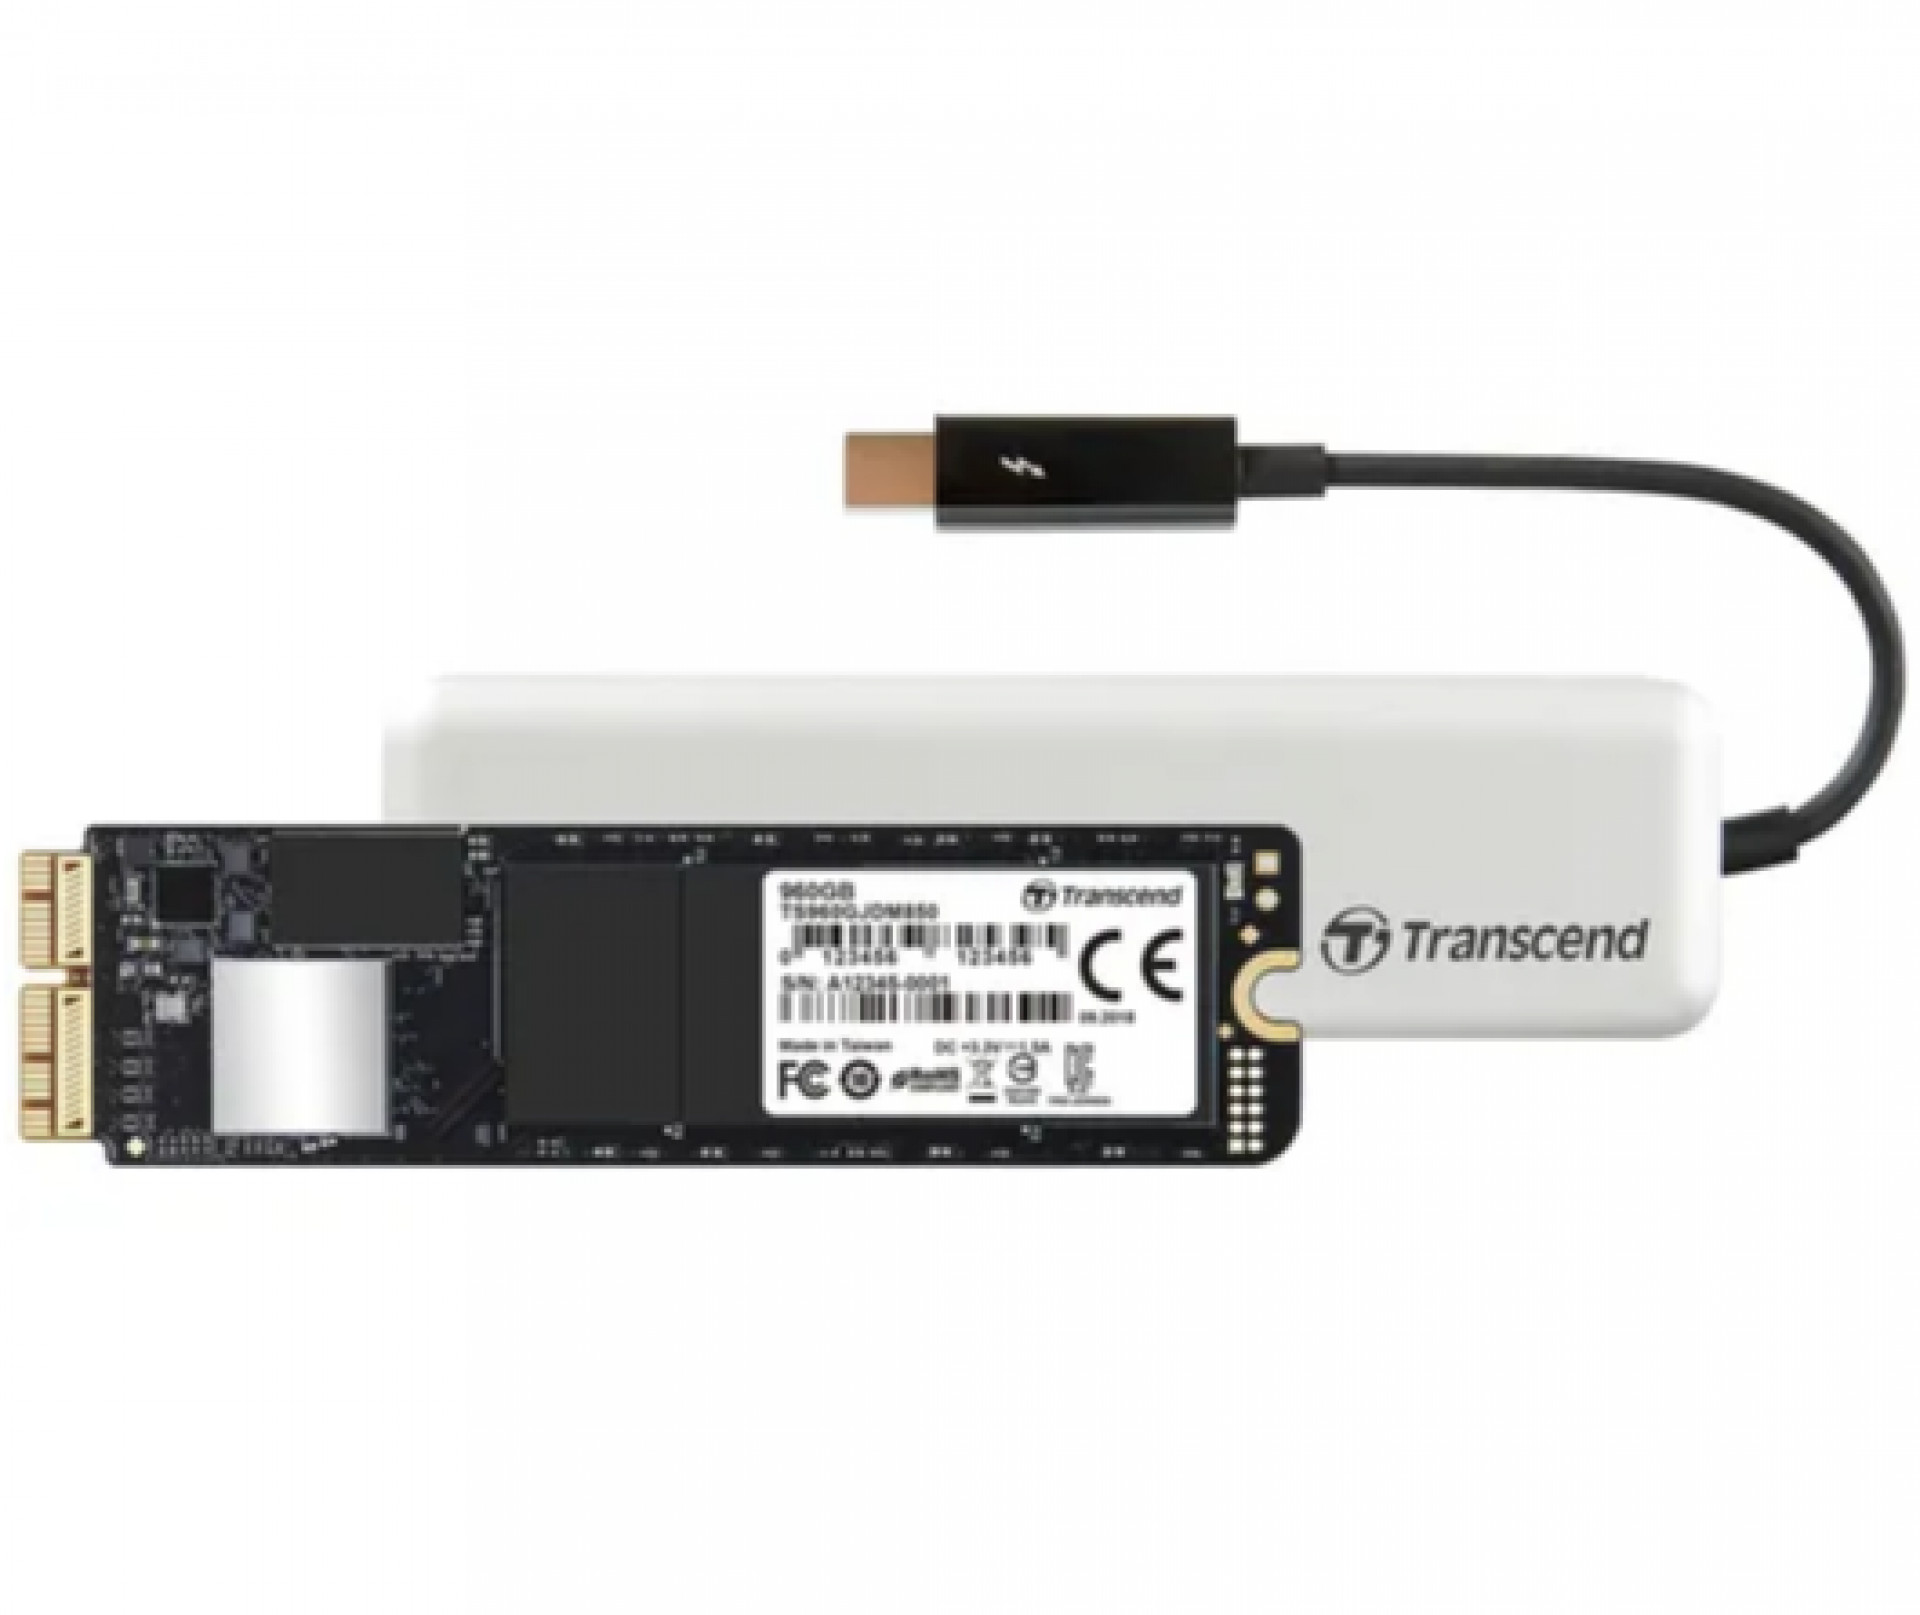 Transcend JetDrive 855 Portable 480 GB External SSD - White